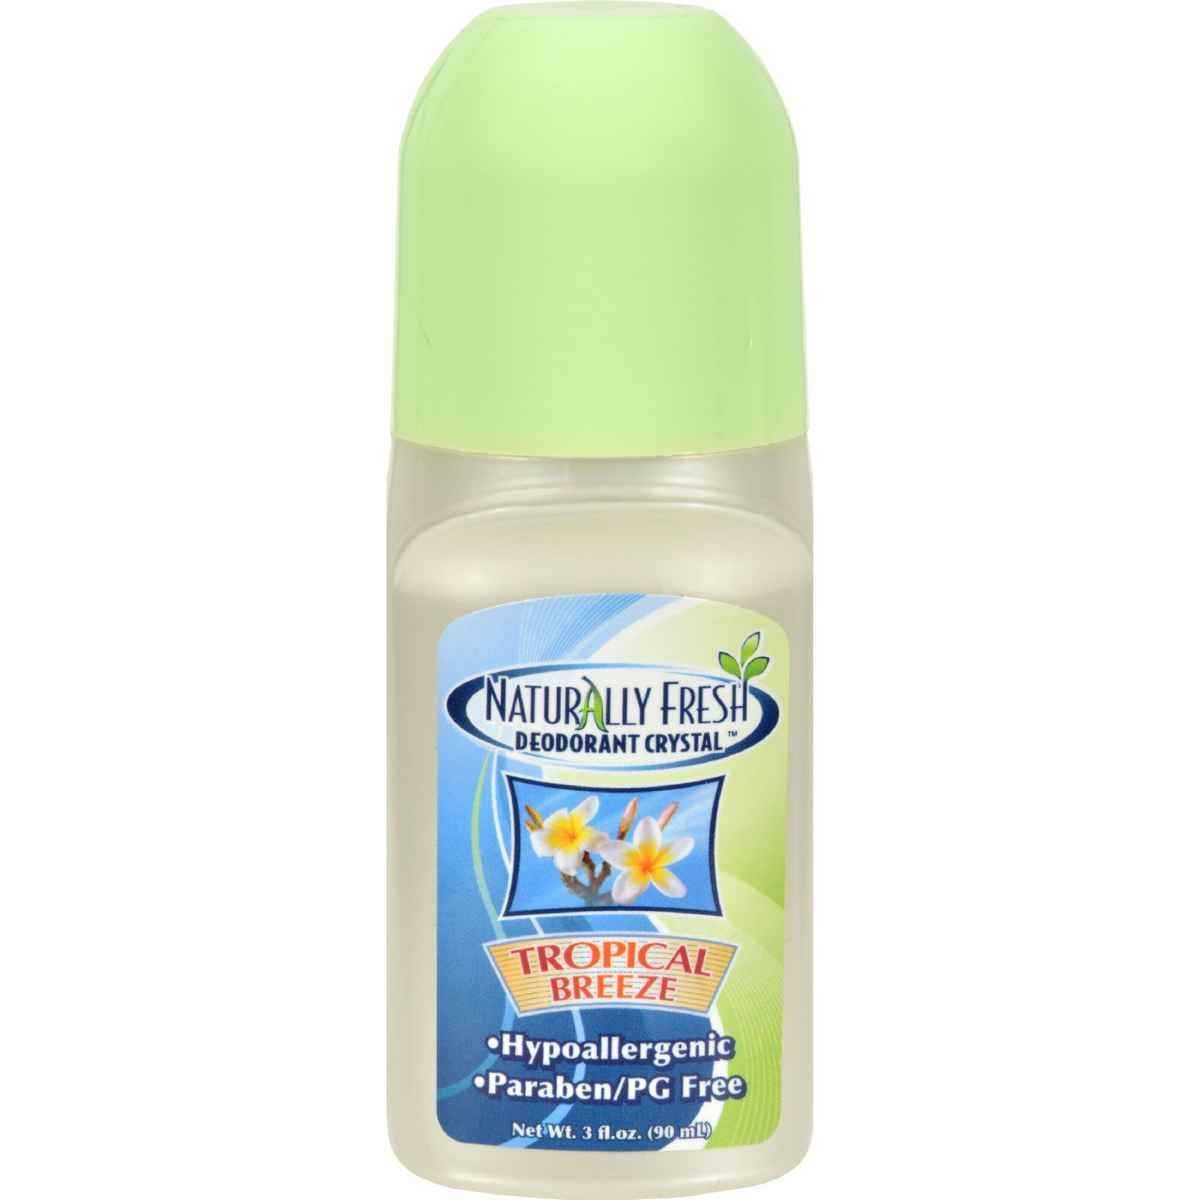 Naturally Fresh Deodorant Crystal Roll-On Deodorant, Tropical Breeze - 3 oz